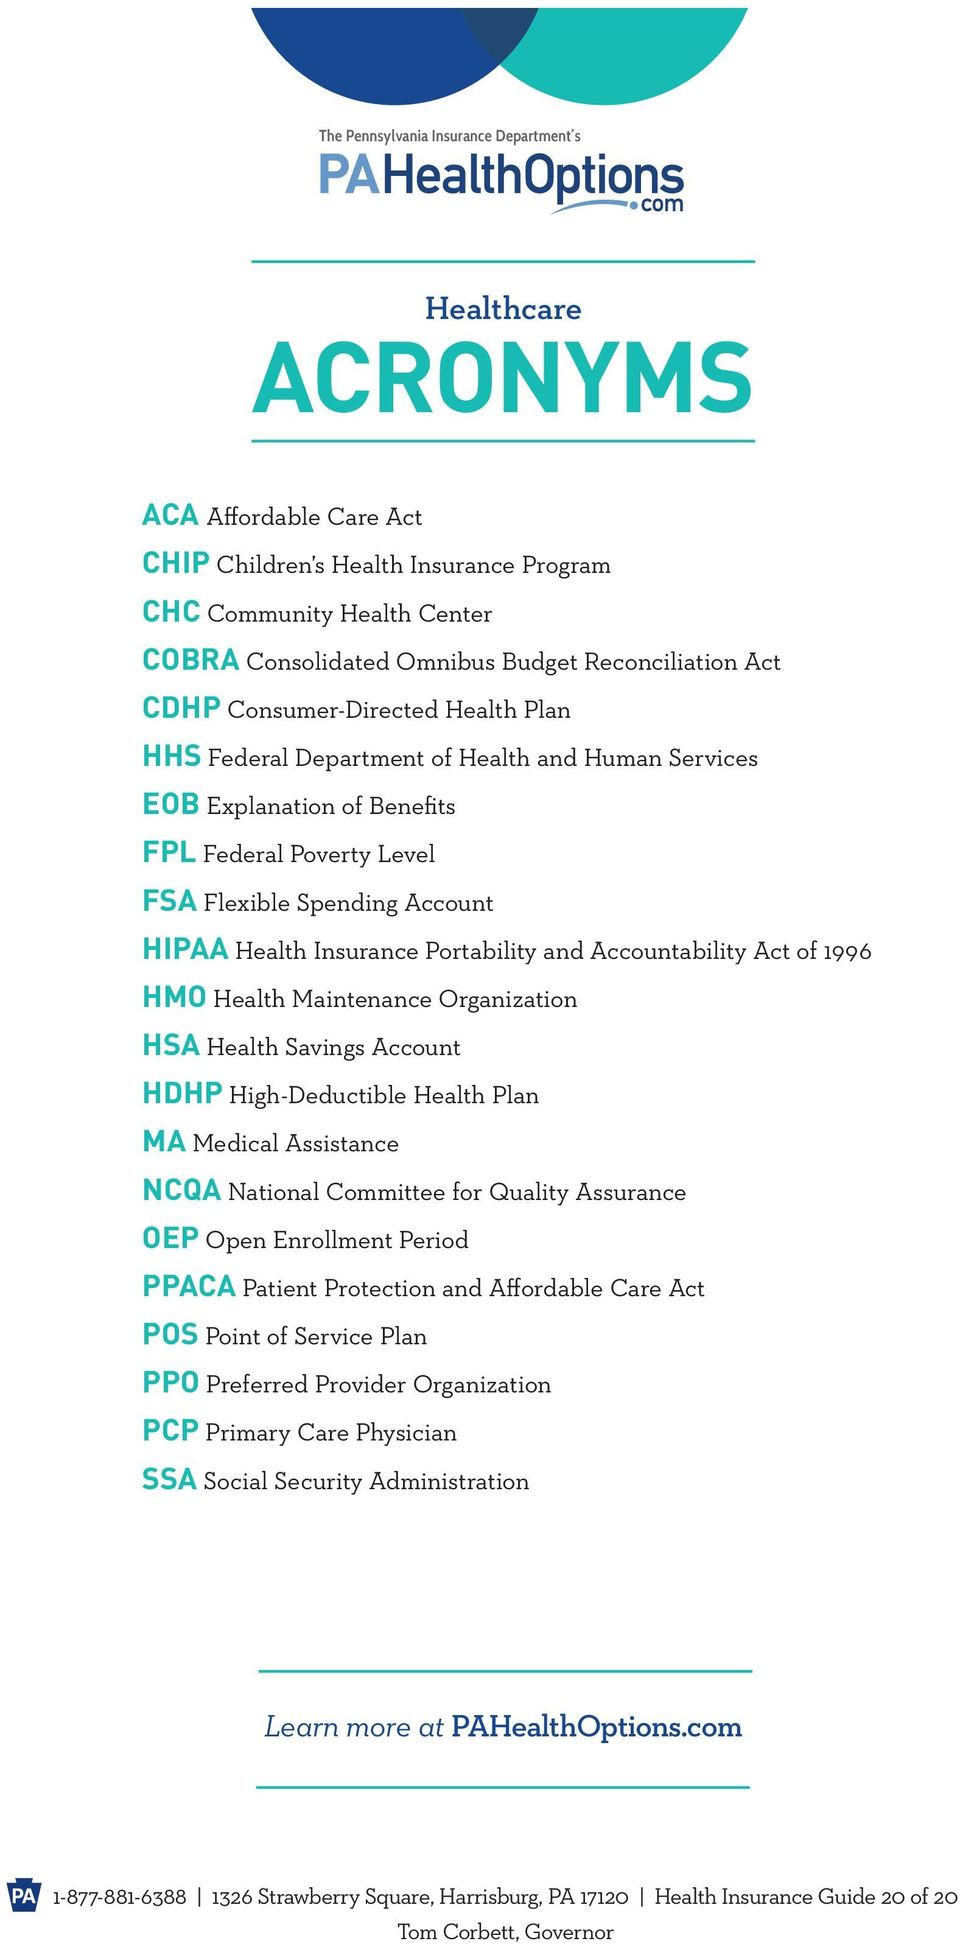 of 1996 HMO Health Maintenance Organization HSA Health Savings Account HDHP High-Deductible Health Plan MA Medical Assistance NCQA National Committee for Quality Assurance OEP Open Enrollment Period